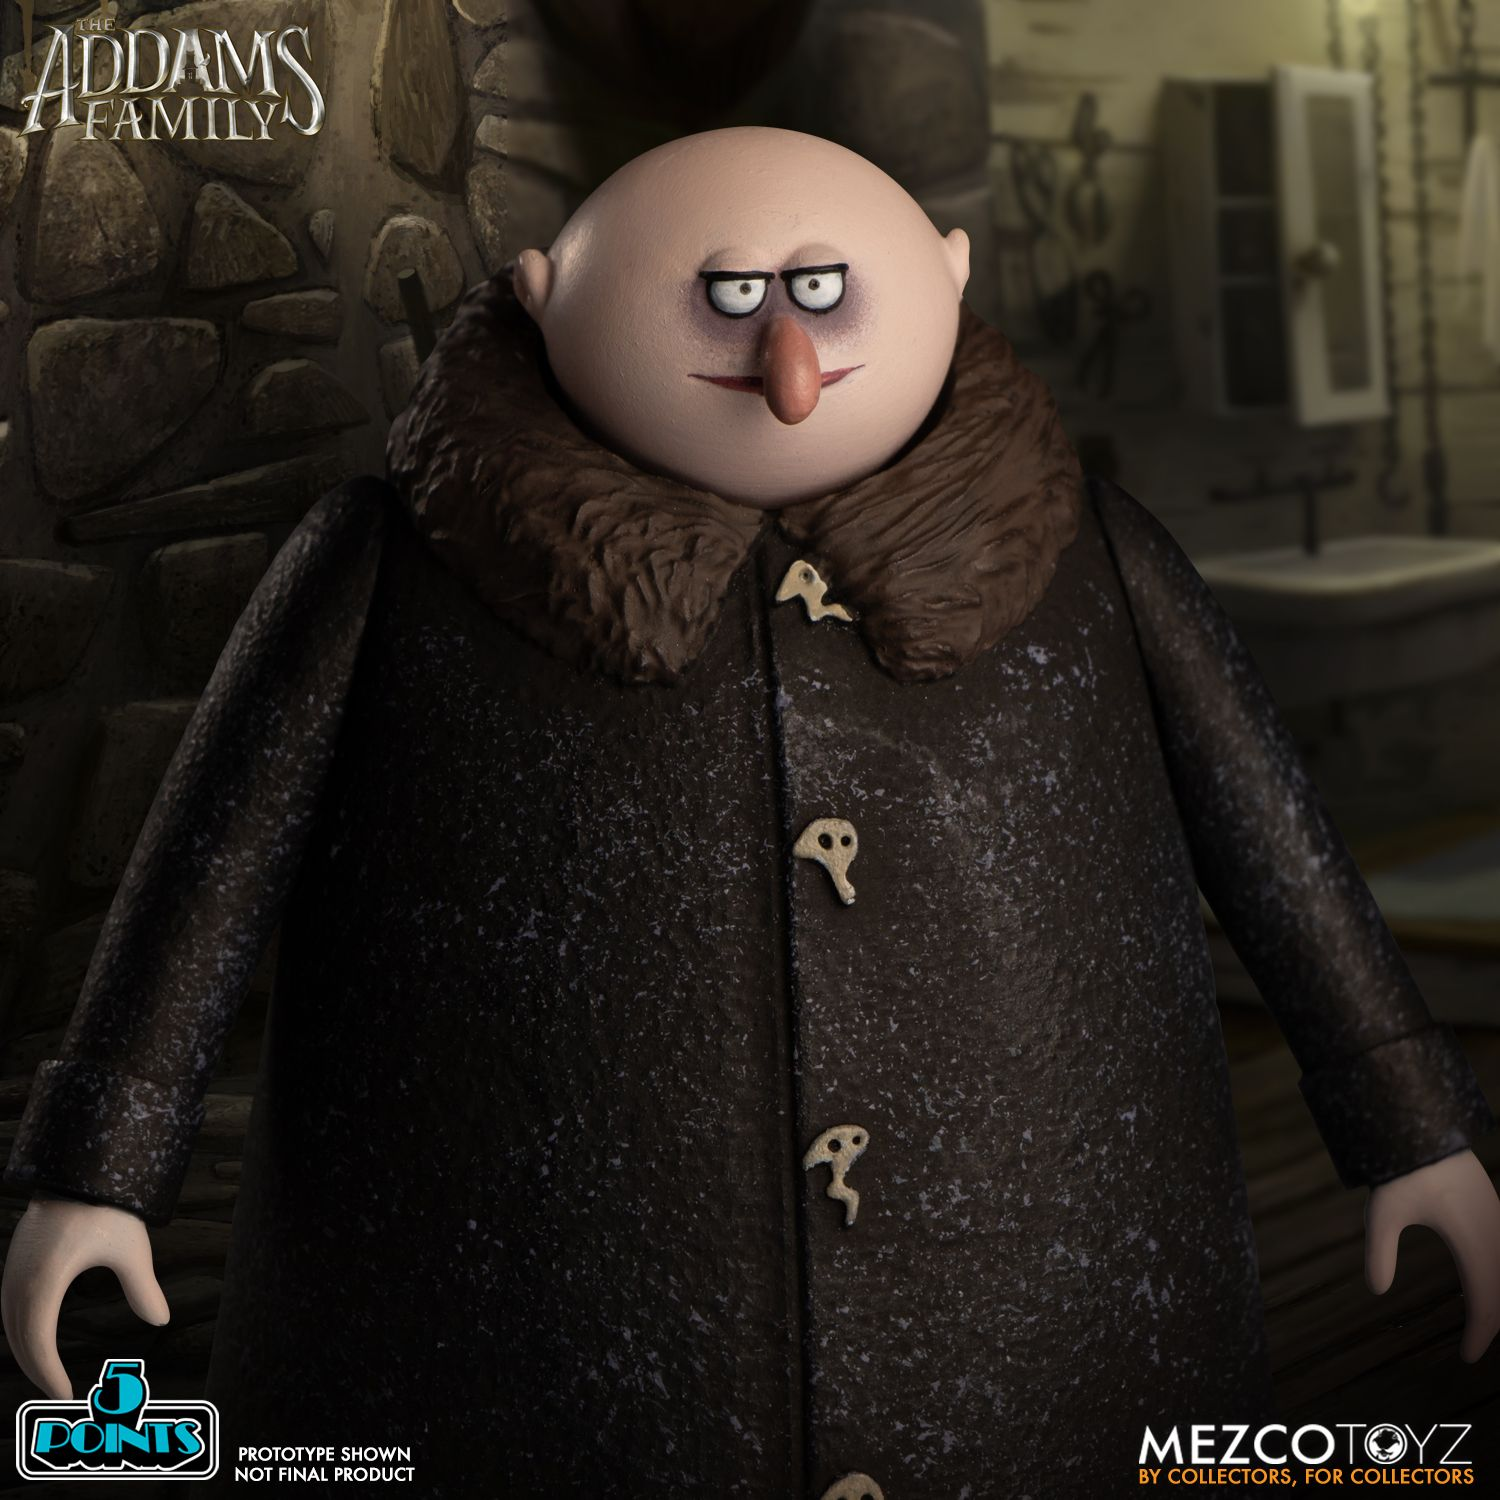 5 Points The Addams Family: Pugsley, Fester, & Thing ...